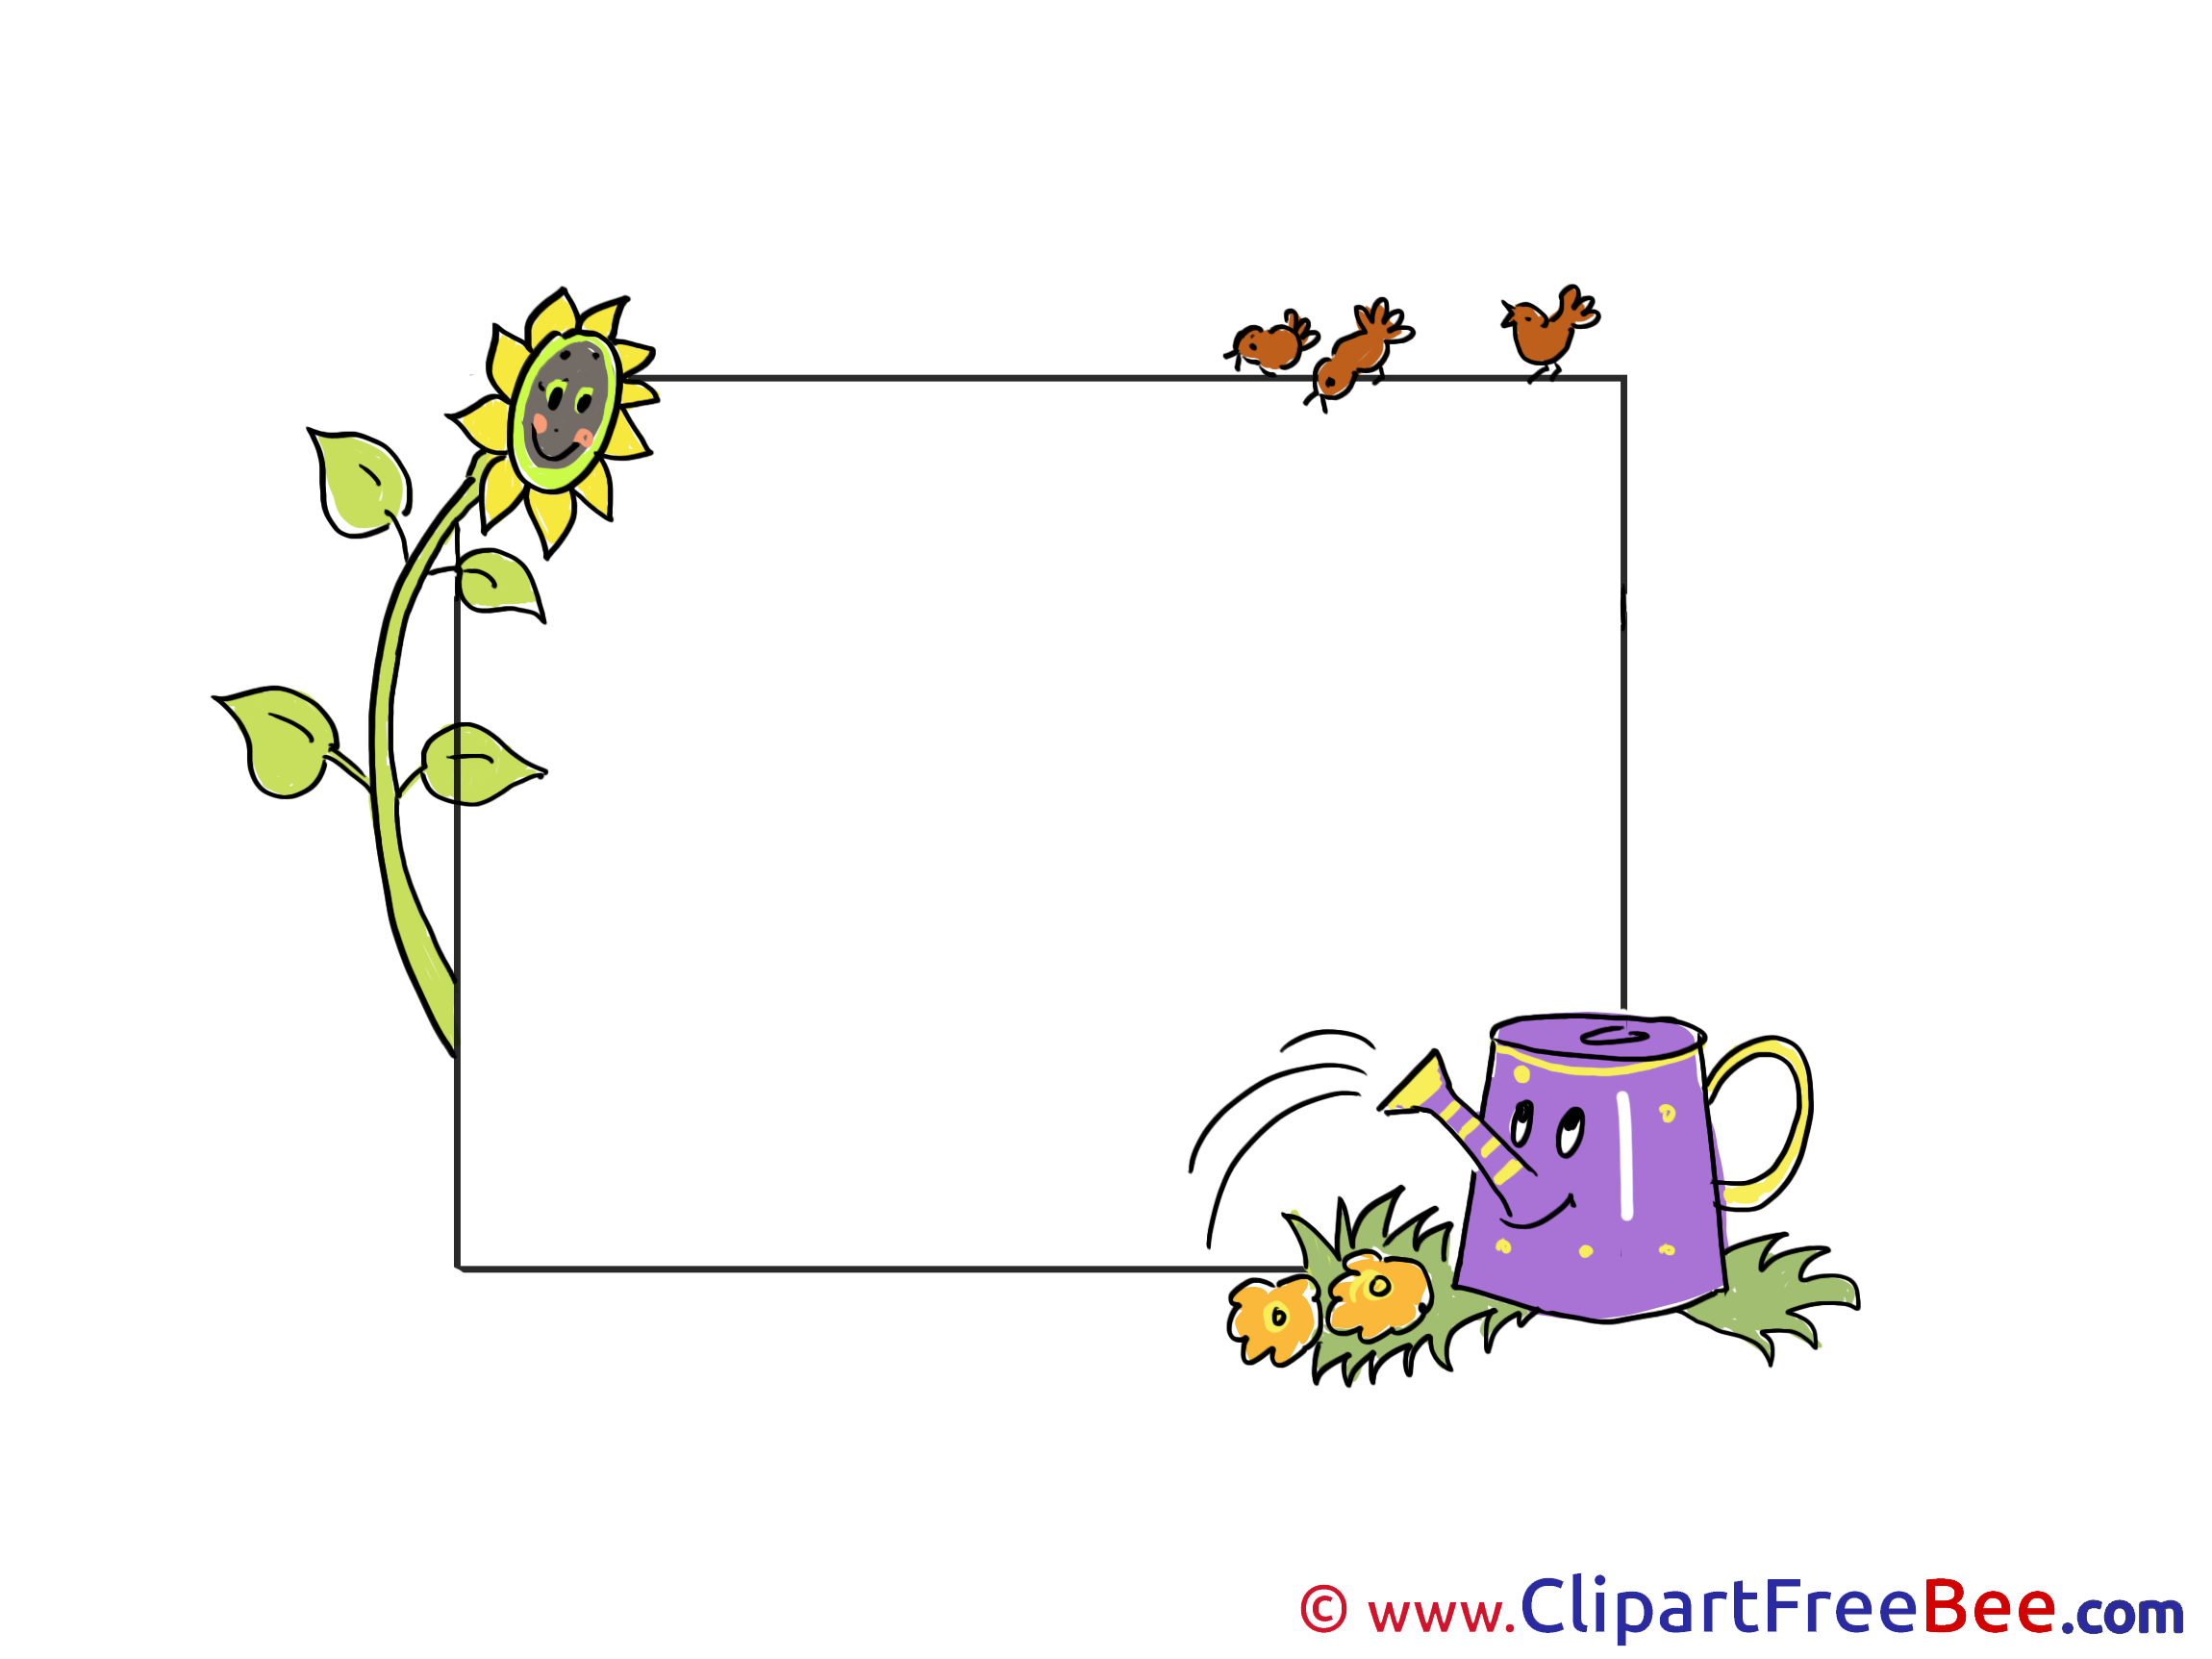 Frames clipart summer. Free cliparts